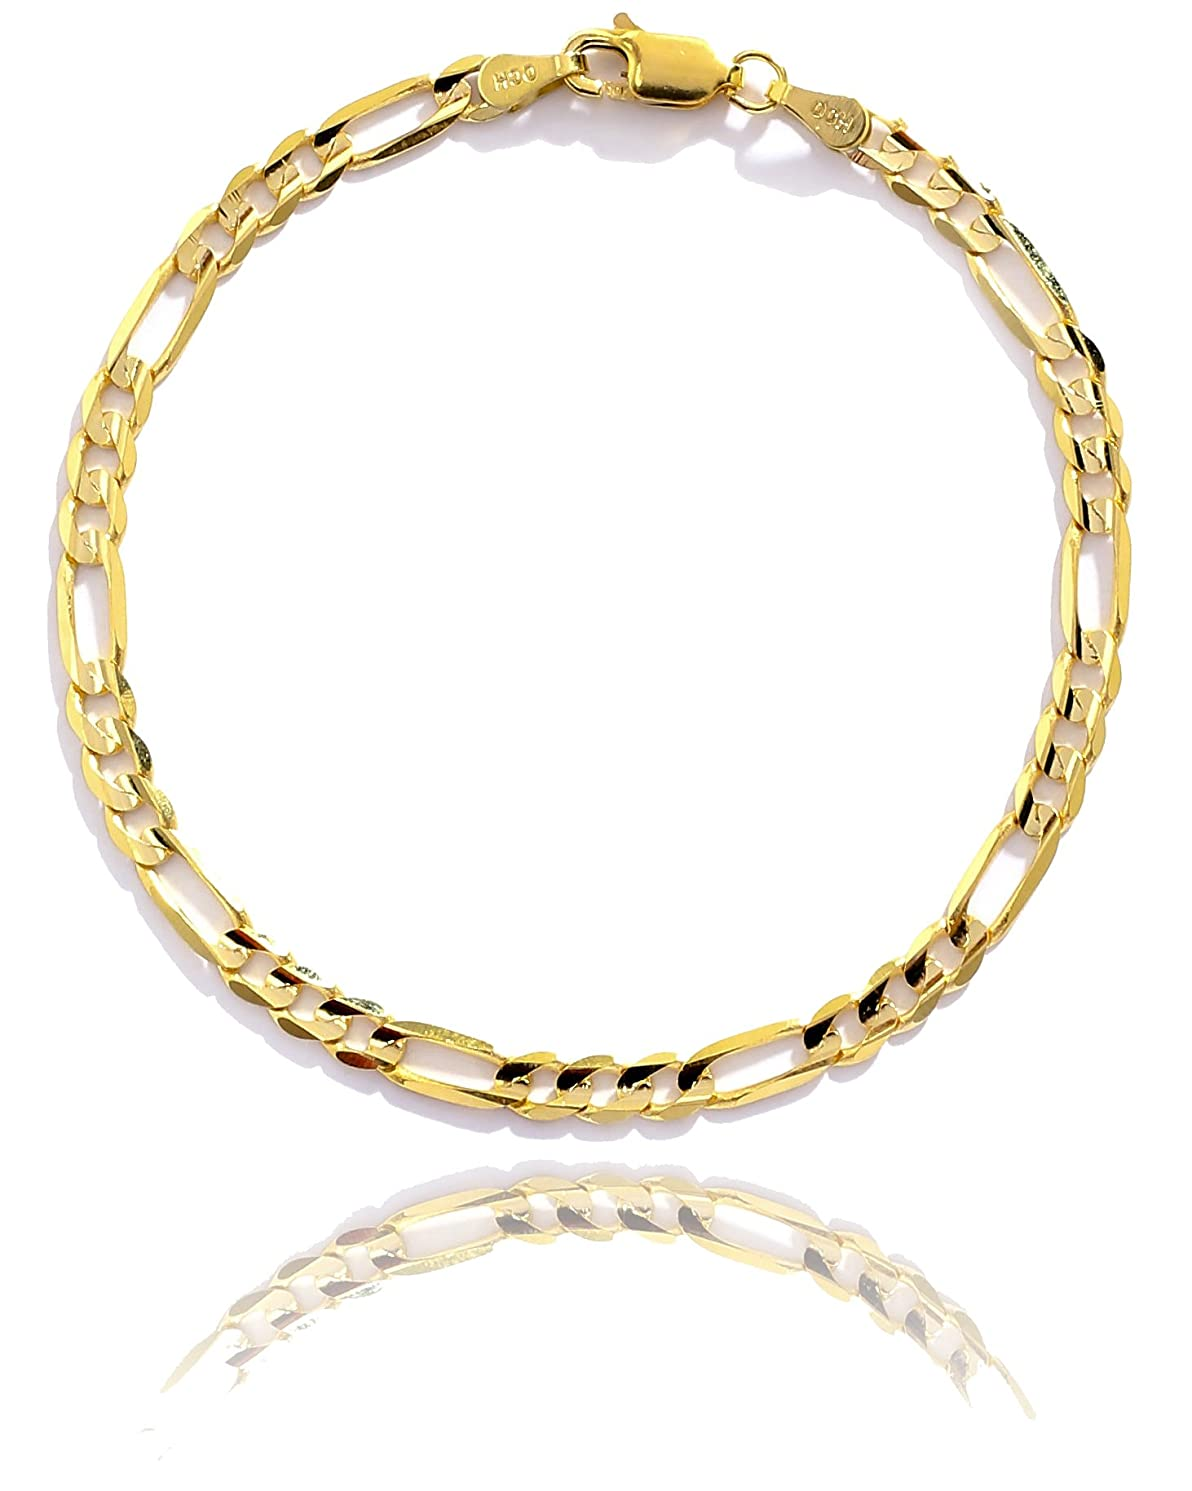 10k Yellow Gold Solid Italian Figaro Chain Wrist and Ankle Bracelet, 0.16 Inch (4mm)